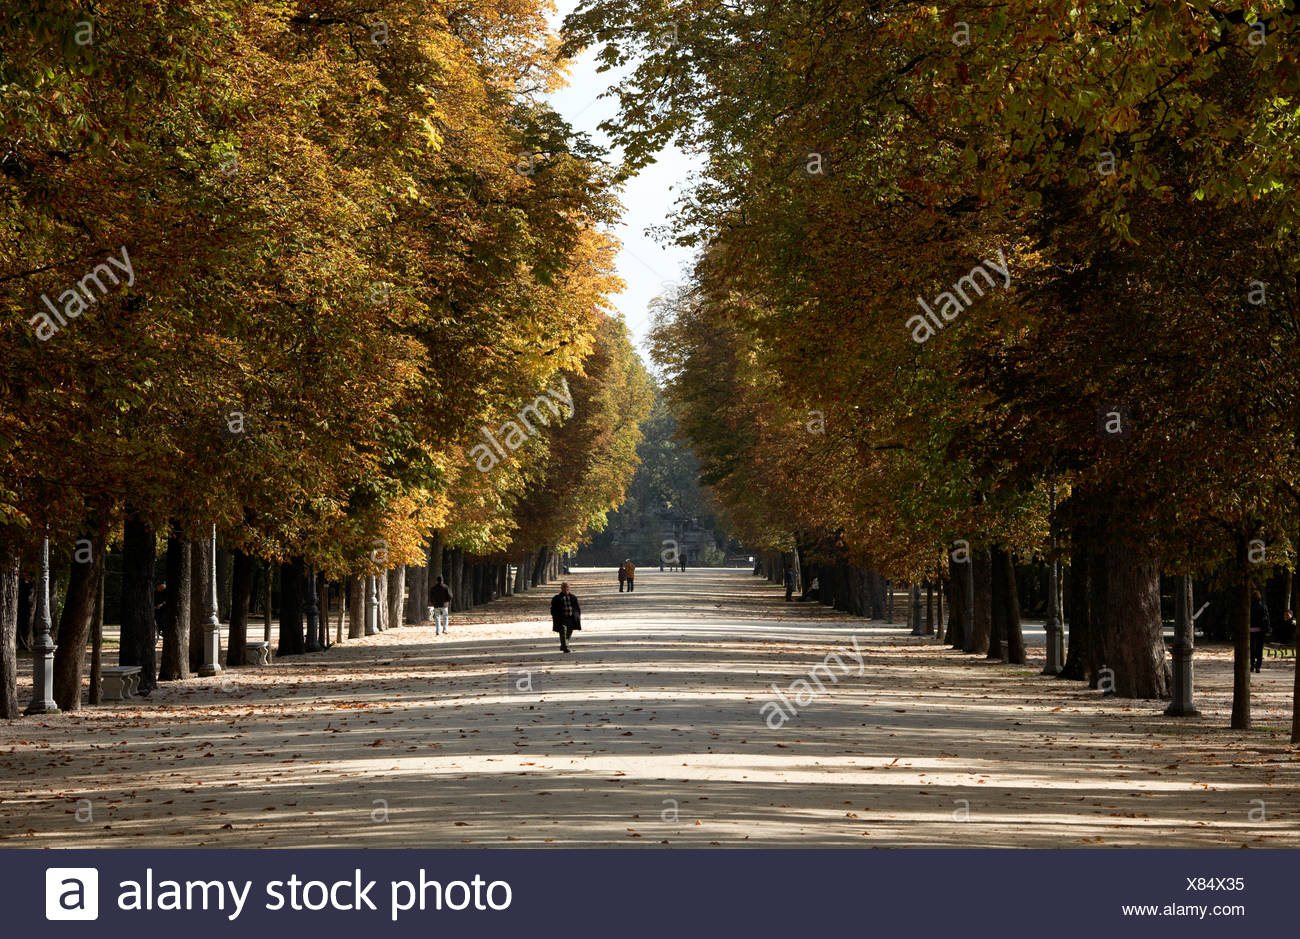 Parma residents stroll through tree-lined promenades in Parco Ducale. - Stock Image